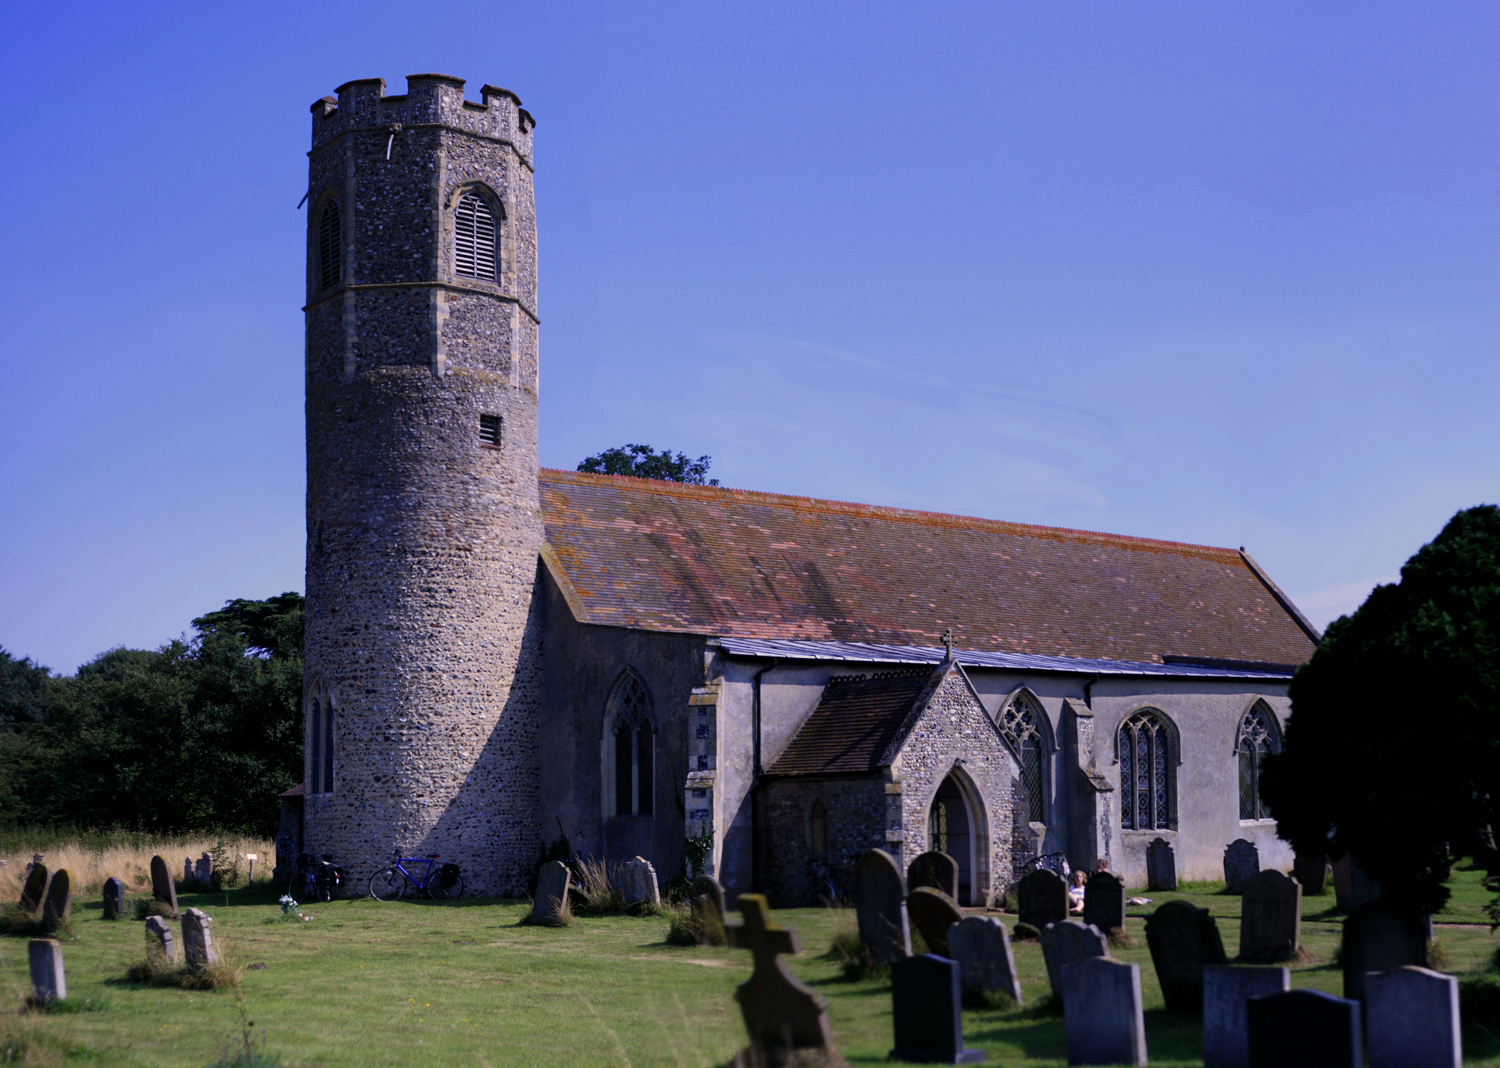 woodton-church-1